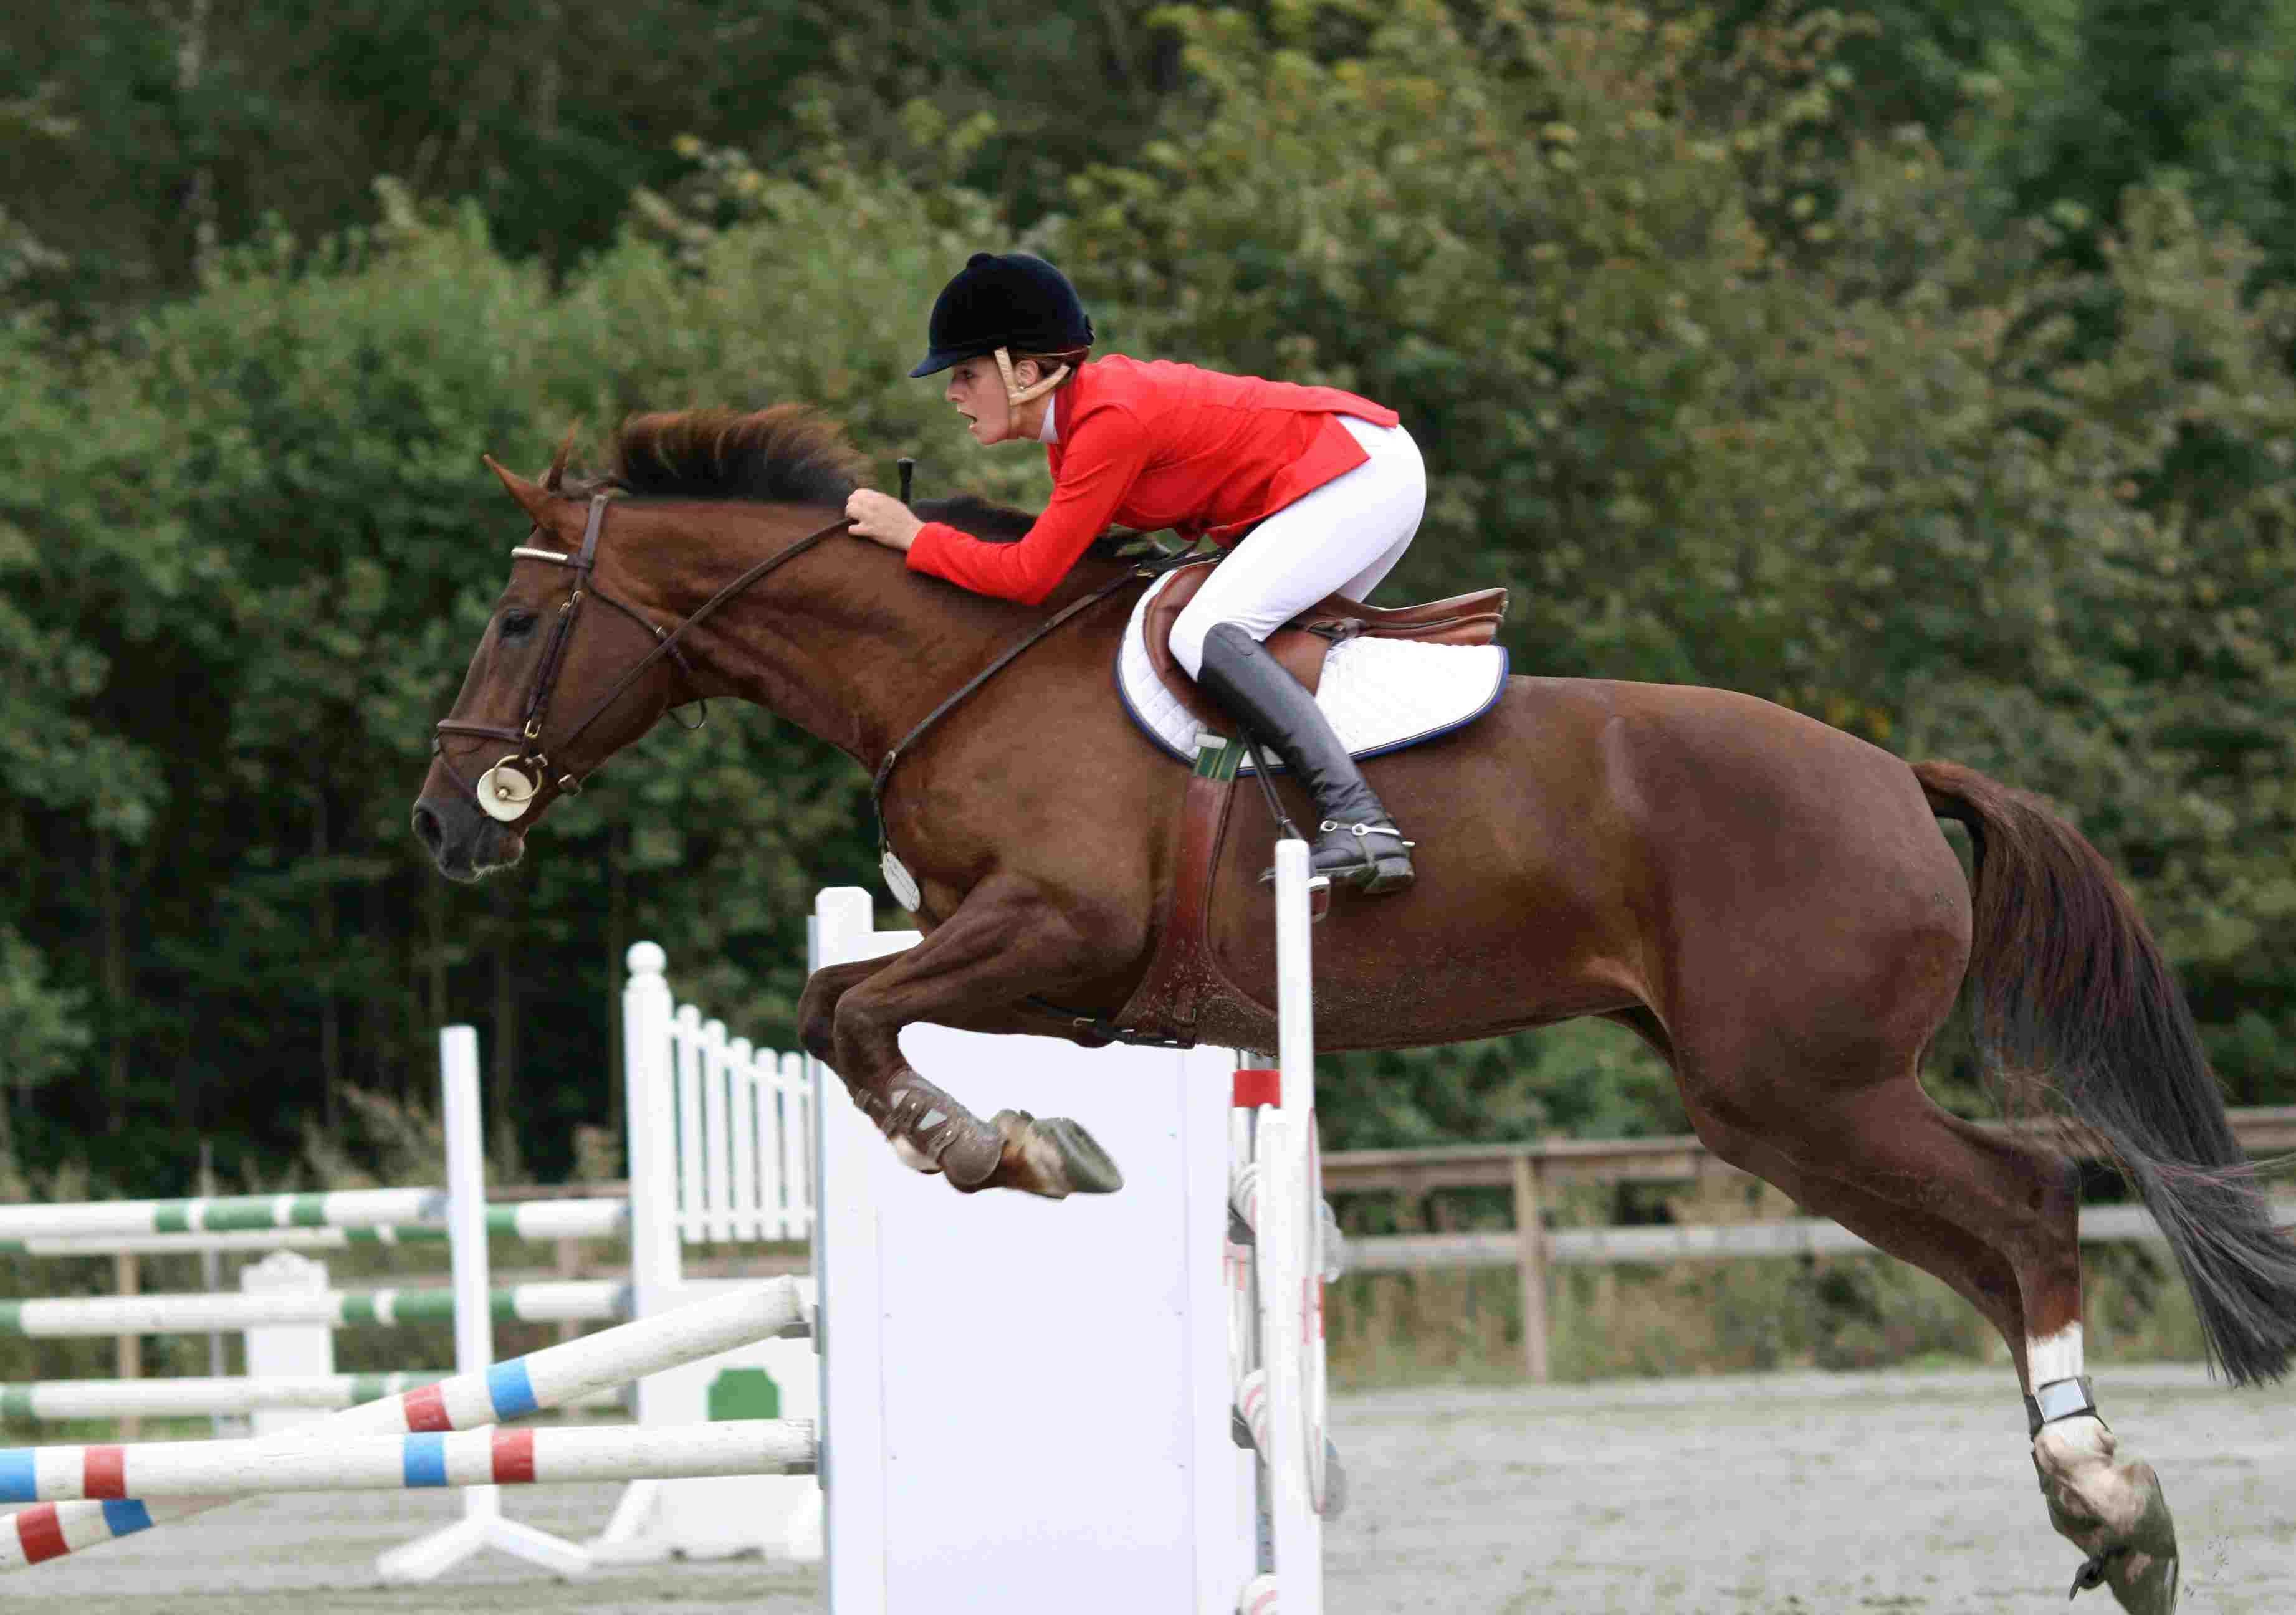 Horse-jumping show competition